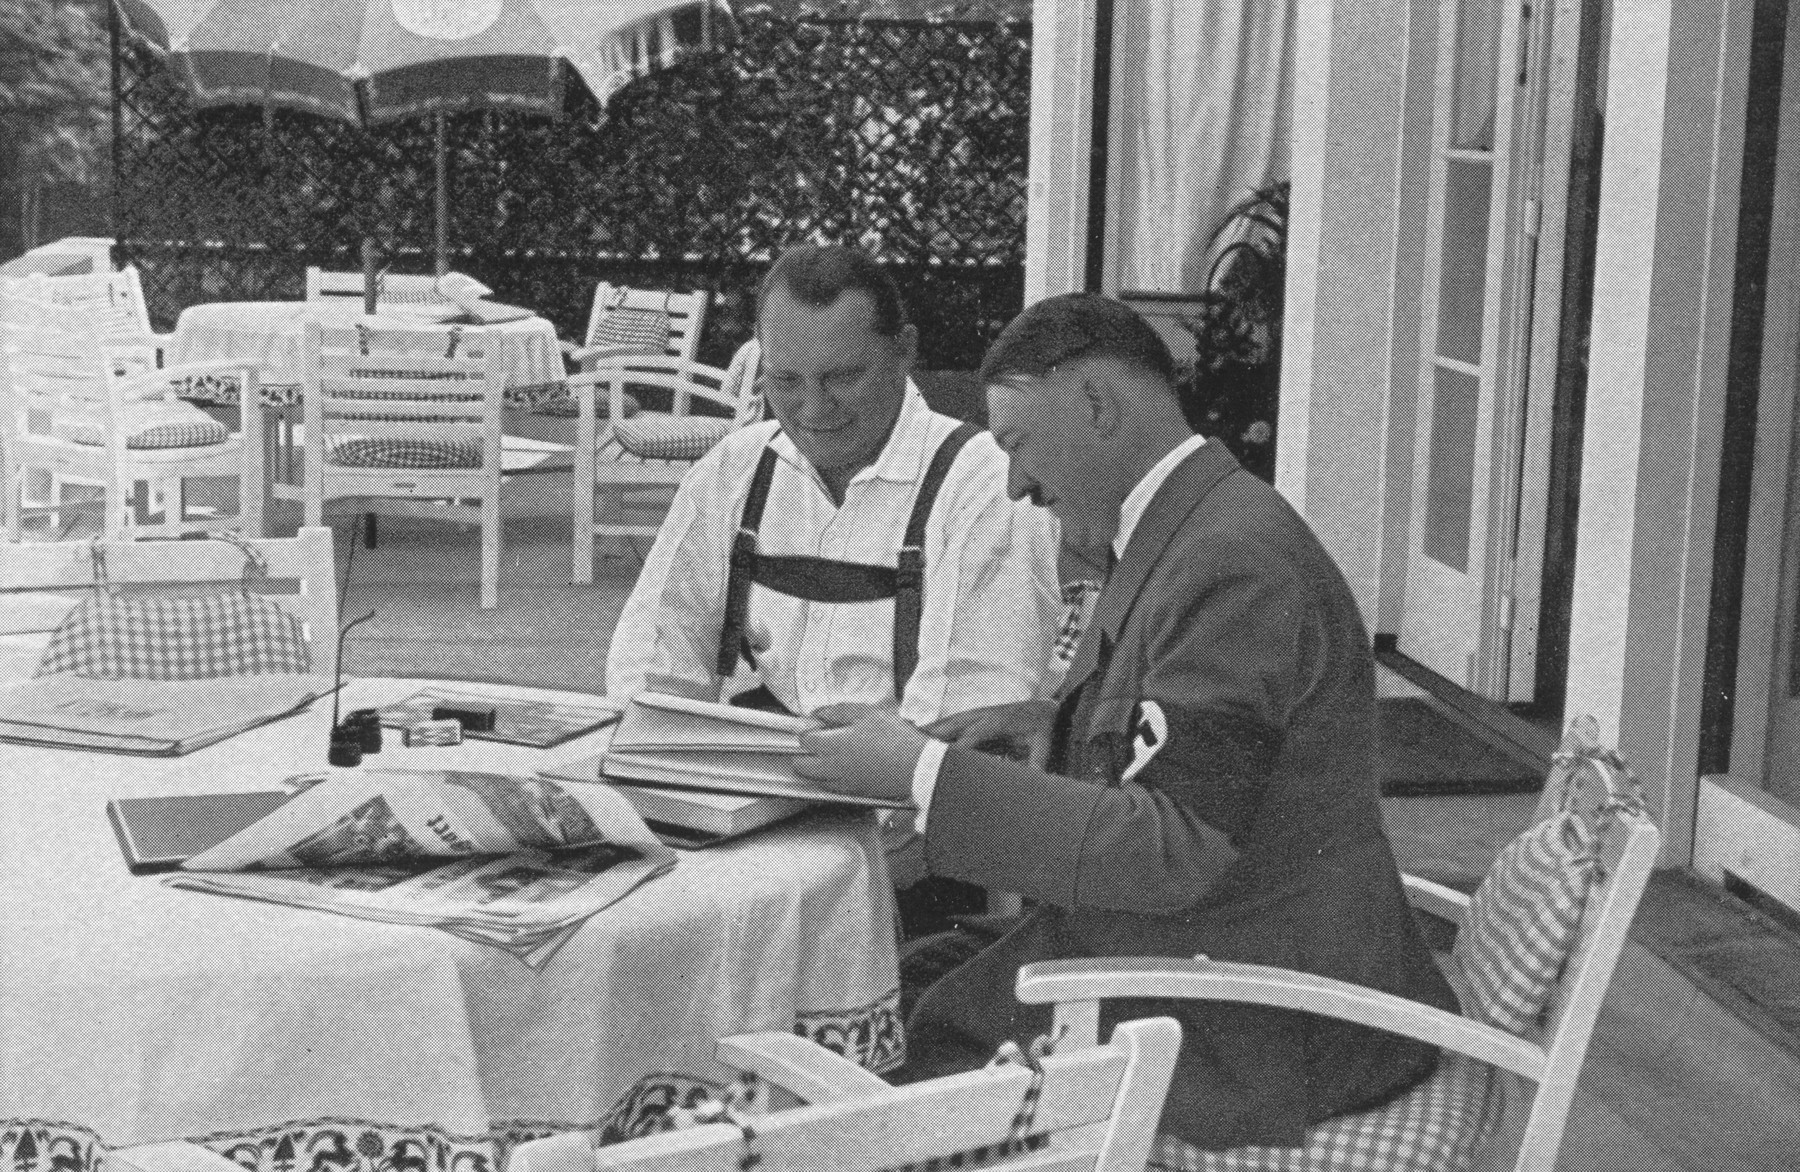 Minister-president Hermann Goering meets with Adolf Hitler on a terrace in the Obersalzberg.